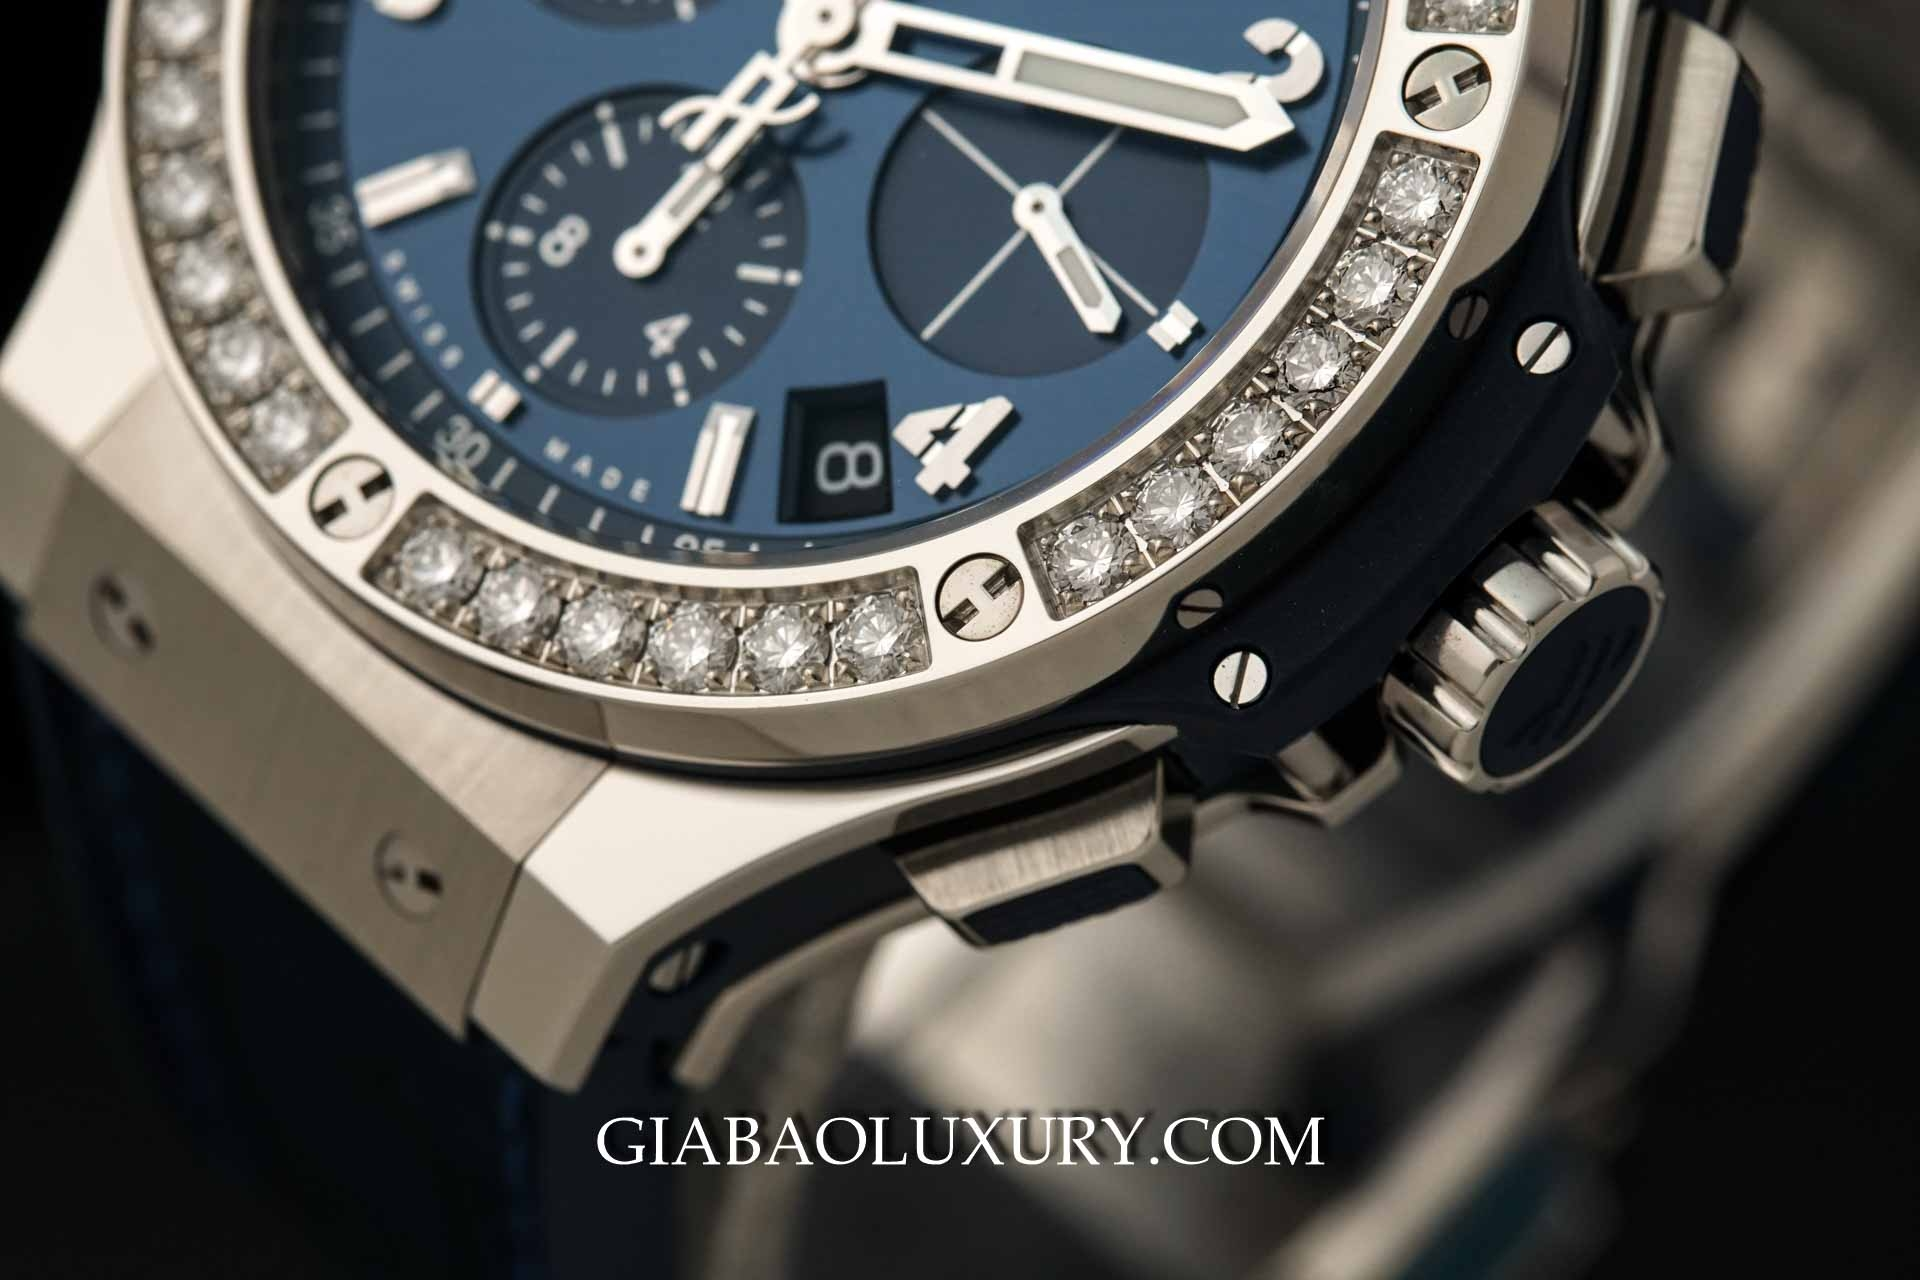 Đồng hồ Hublot Big Bang Chronograph 41mm